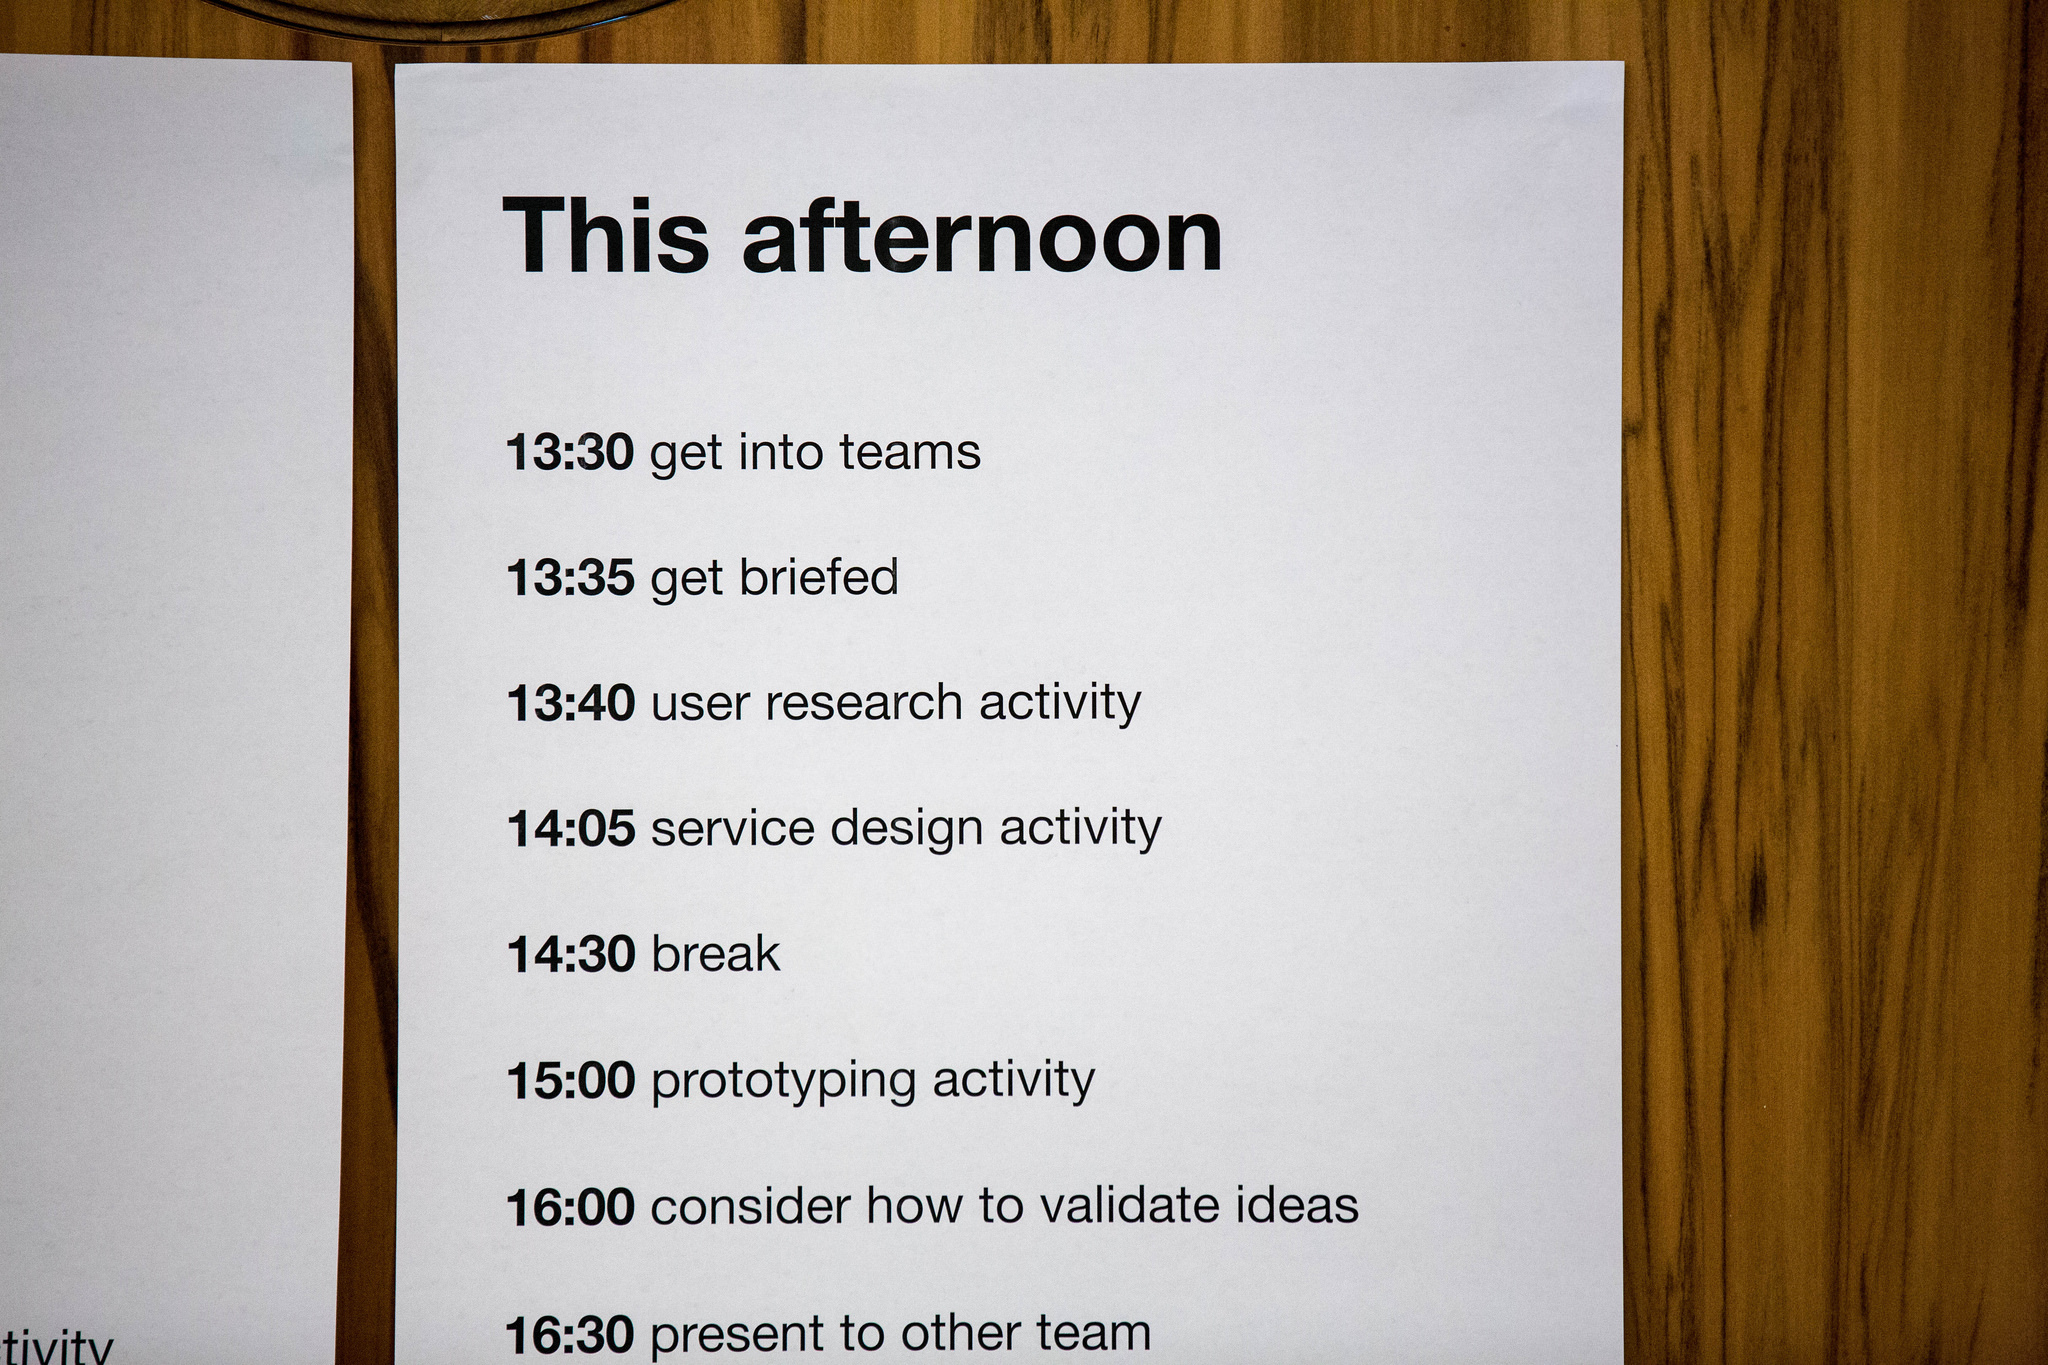 The agenda for the Student Design Day